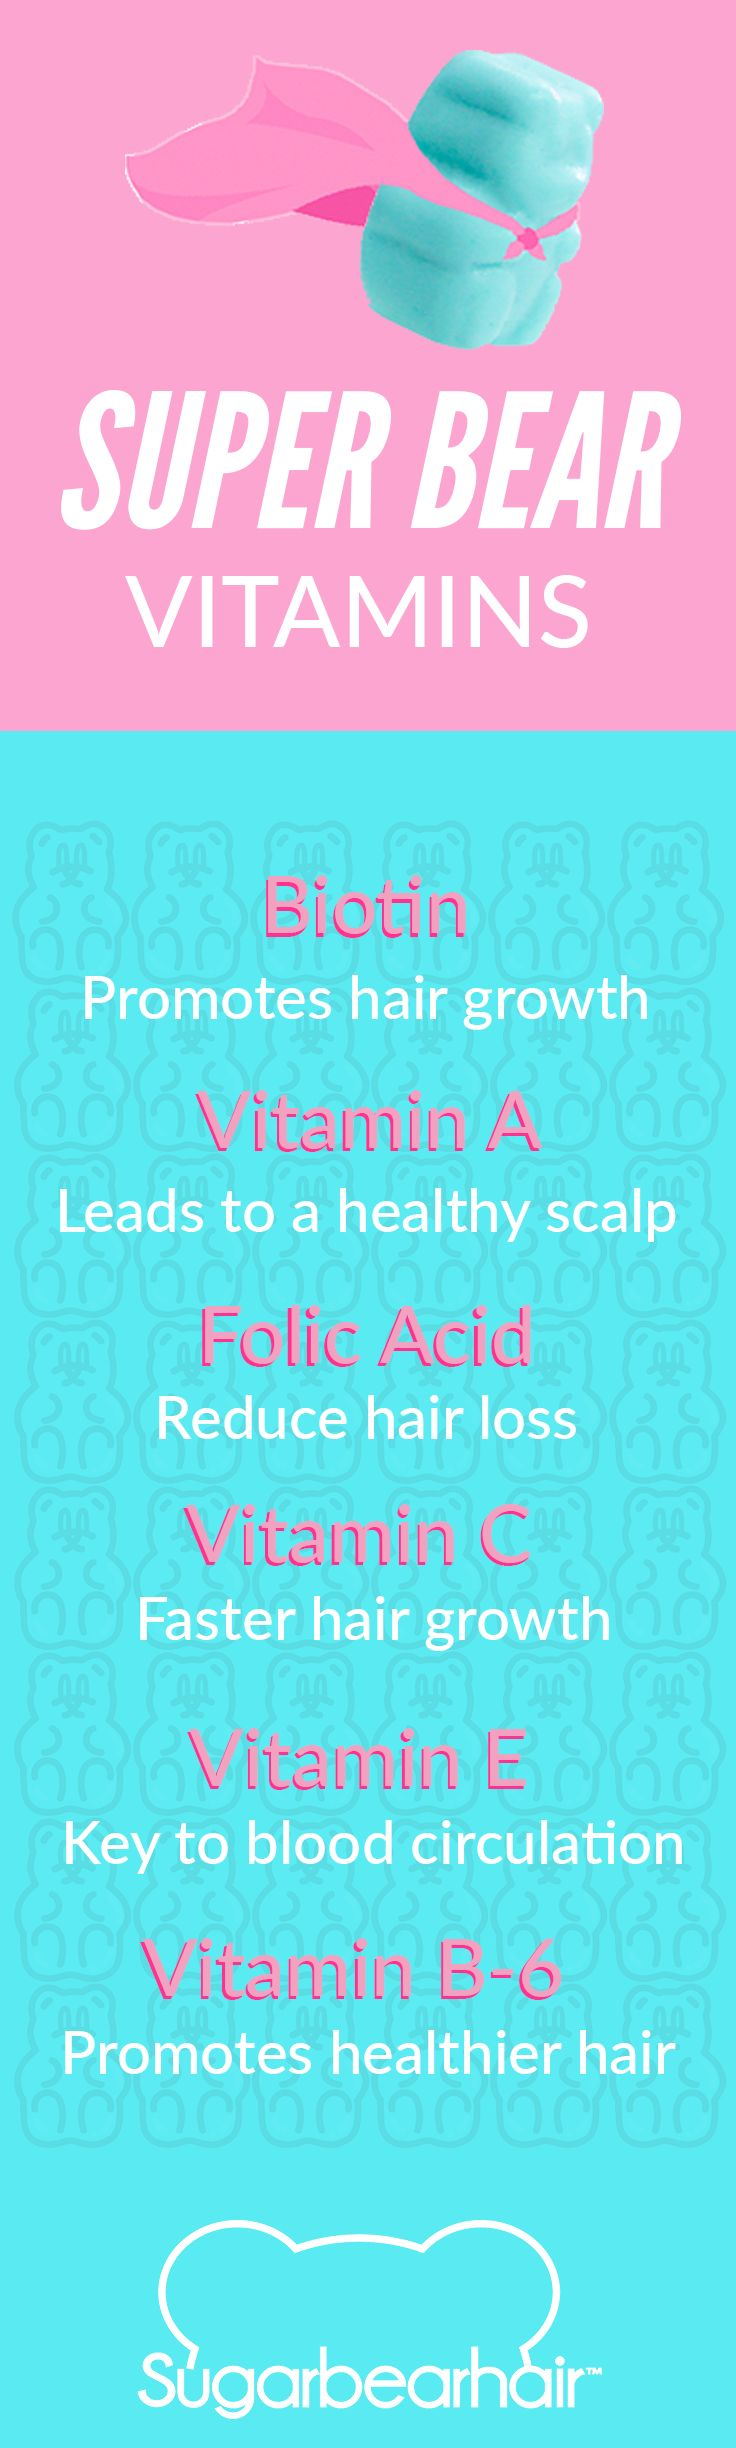 Sugar Bear Hair gummy vitamins not only help you grow strong and healthy locks but they taste incredible! Start your 30-day trial today and see the results for yourself!